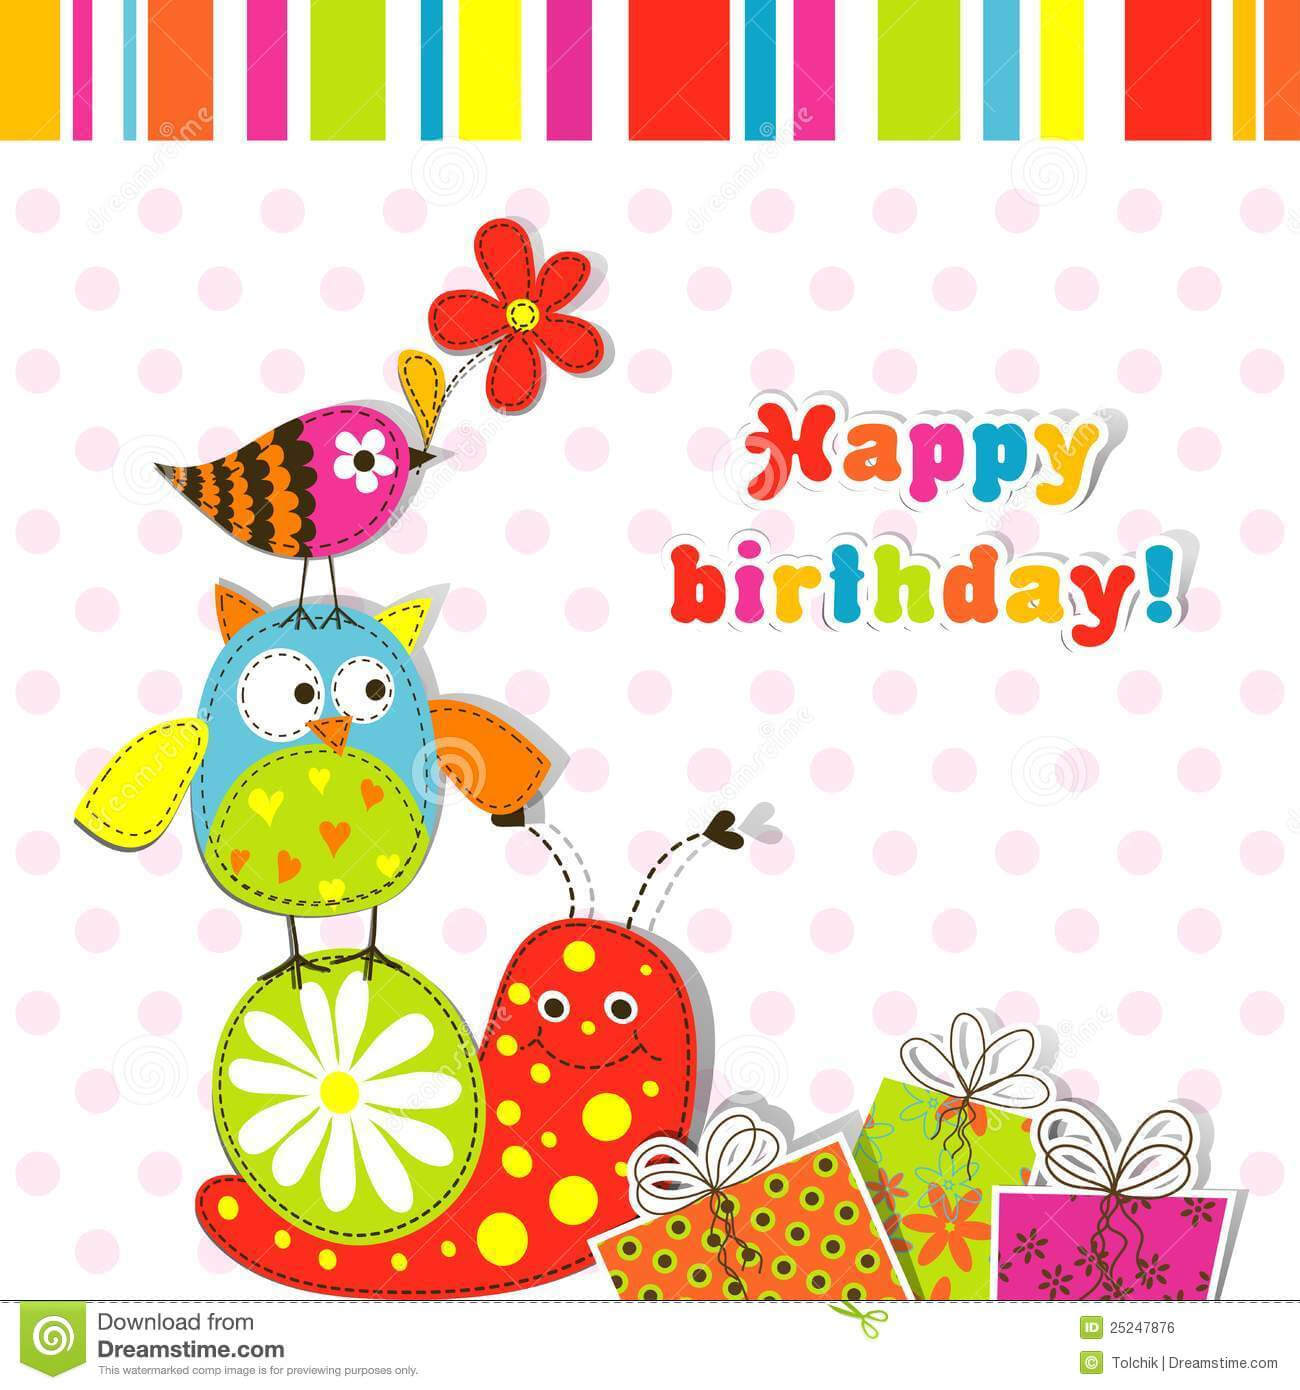 Birthday Template Free Download Awesome Birthday Card Pertaining To Microsoft Word Birthday Card Template